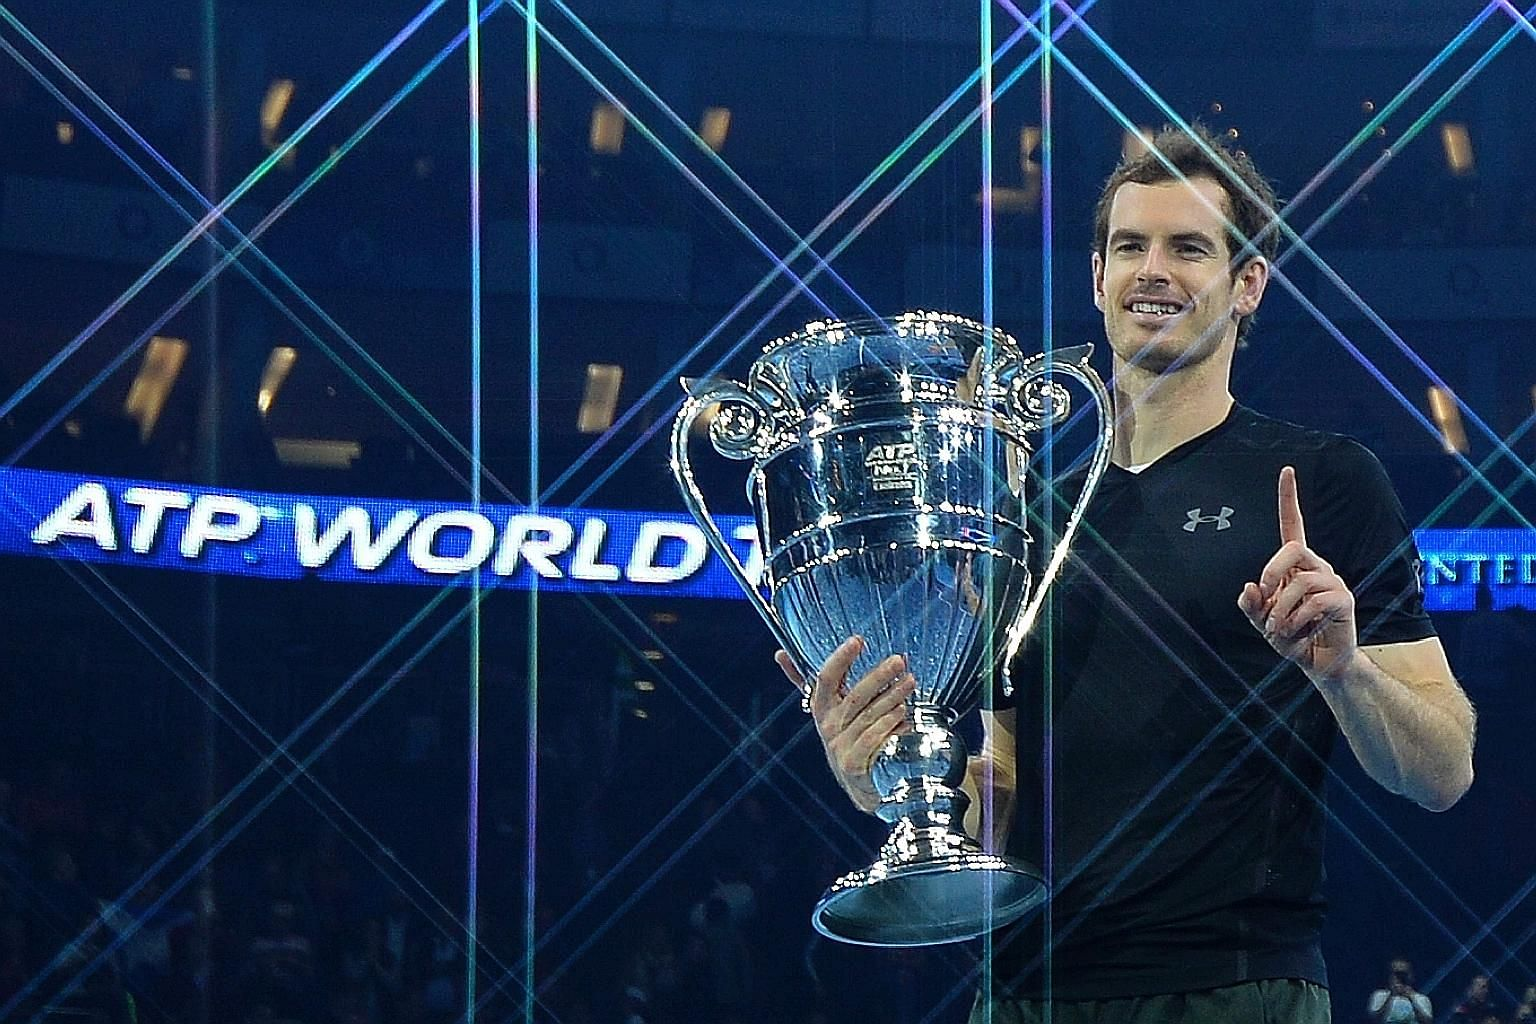 Top: Britain's Andy Murray posing with the ATP World Number One trophy after finishing as the year-end world No. 1 at the season-ending ATP World Tour Finals in London last month. Above: Women's tennis world No. 1 Angelique Kerber of Germany posing a